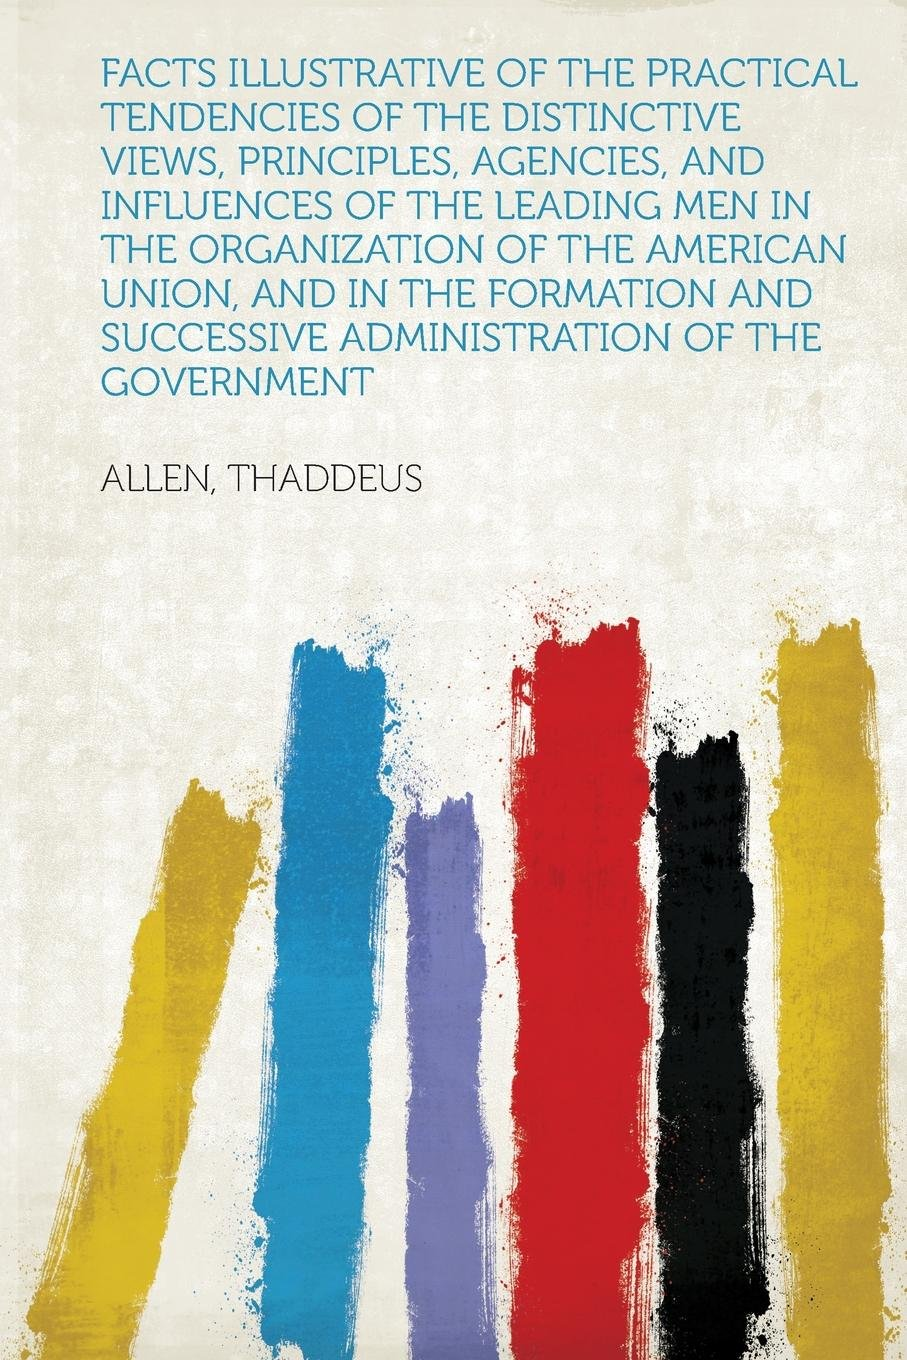 Download Facts Illustrative of the Practical Tendencies of the Distinctive Views, Principles, Agencies, and Influences of the Leading Men in the Organization ... Successive Administration of the Government ebook